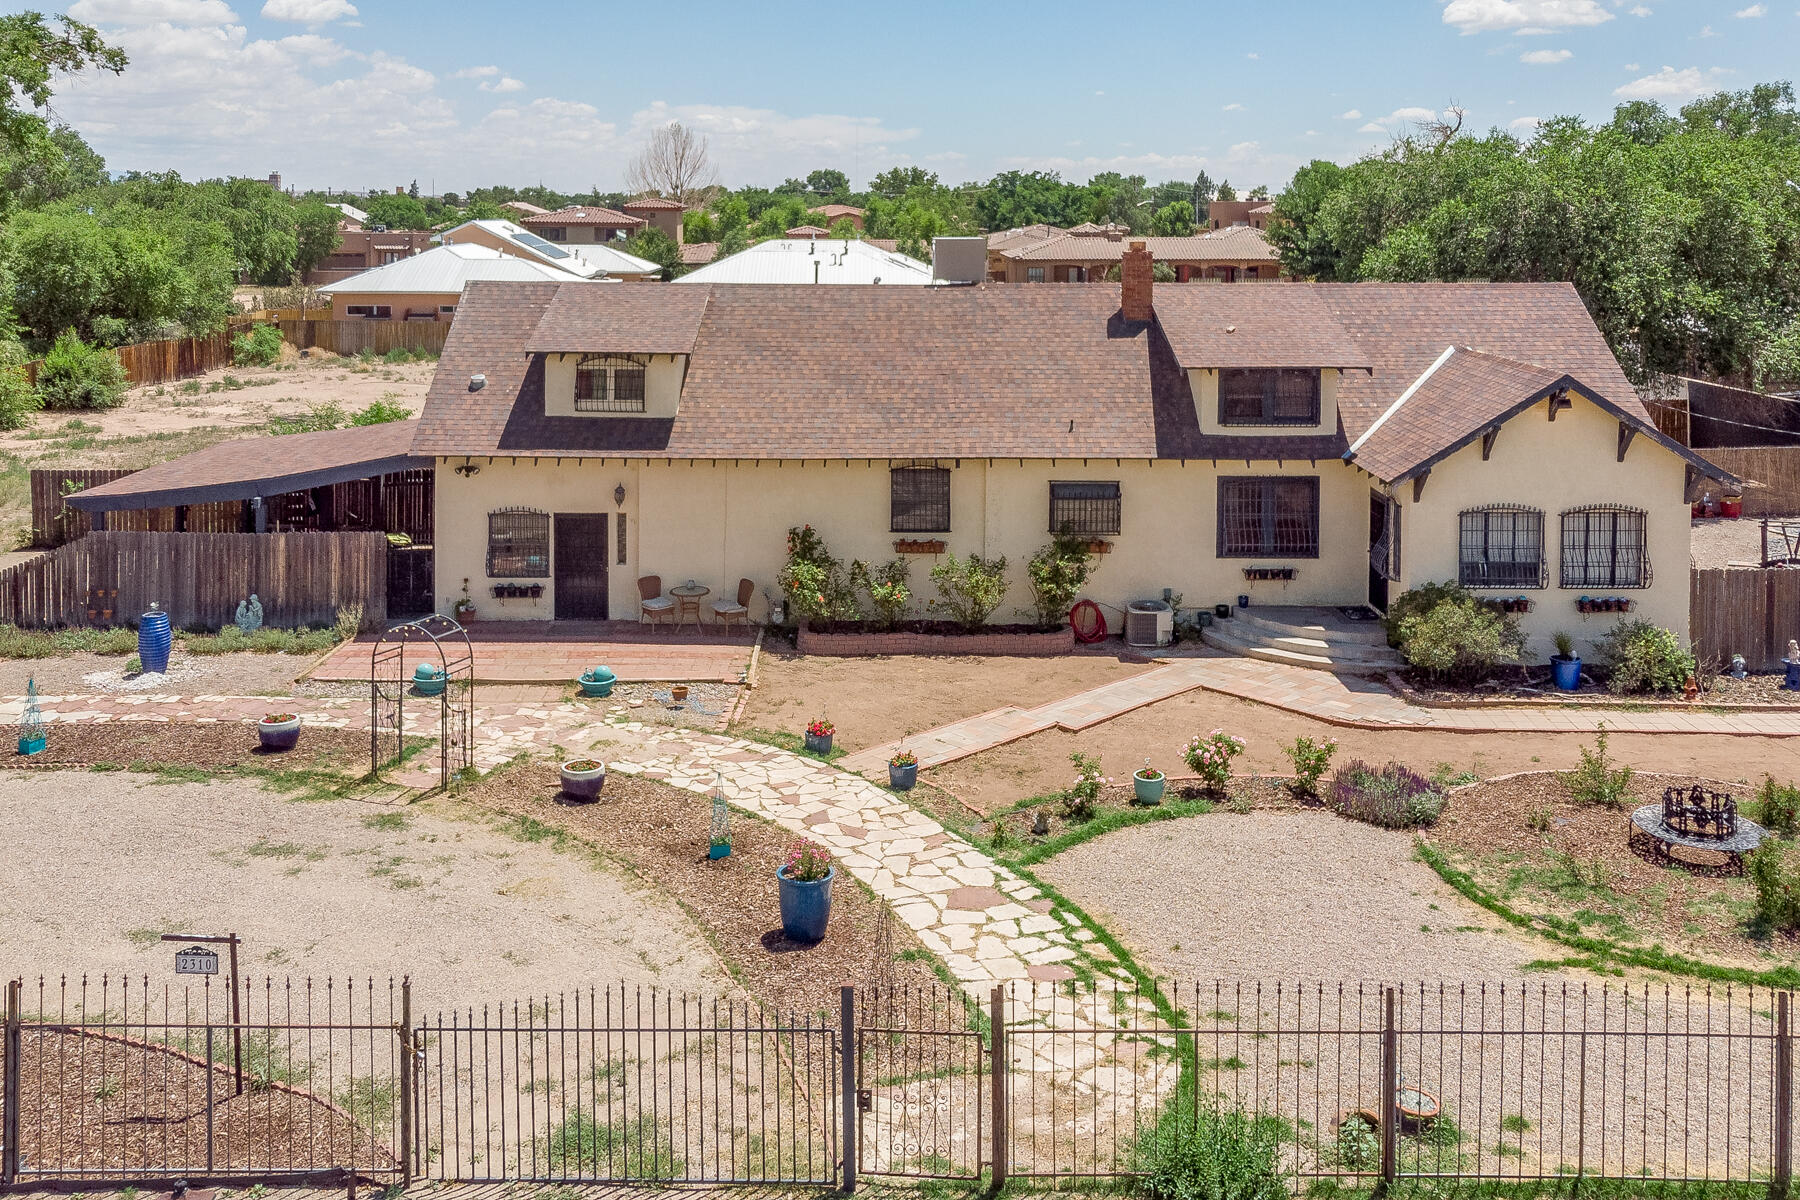 Don't miss your opportunity to own this historic treasure on over an acre of land in the North Valley! There is plenty of room to build and with zoning classification R-A this is a unique investment opportunity in a prime location. Not only does this custom home offer 5 bedrooms, 4 bathrooms, 3 living areas and 3320 square feet of heated space, it also offers a 945 square foot basement AND 122 square foot enclosed sunroom. Enjoy entertaining under the enormous, covered patio with built-in grill. This home has a fun blend of authentic historic features such as original skeleton key doors and hardwood floors mixed with modern conveniences like the updated kitchen. Keep comfortable with various heating and cooling sources (refrigerated air for the lower level, evaporative cooling for the